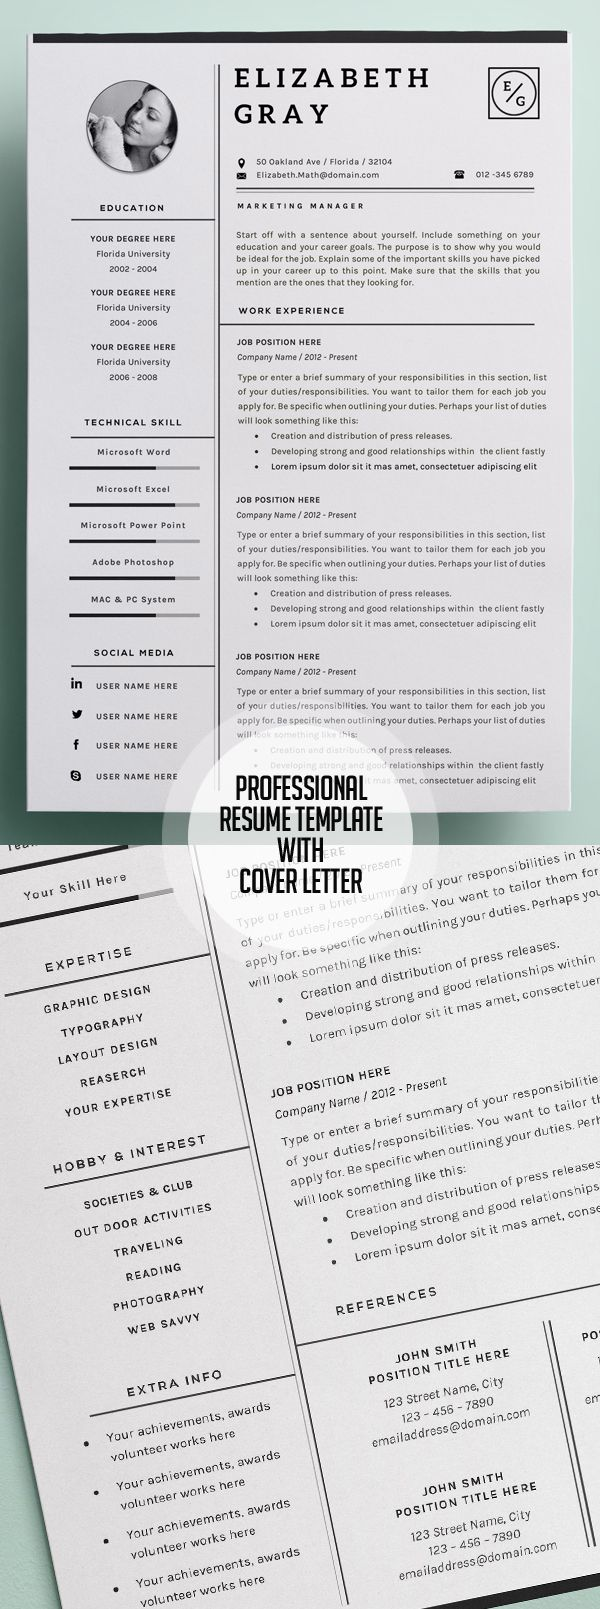 Opposenewapstandardsus  Picturesque  Resume Ideas On Pinterest  Resume Resume Templates And  With Lovable Professional And Modern Resume Template With Page Cover Cvtemplate With Amazing Proffesional Resume Also Instructional Design Resume In Addition Resumes With No Work Experience And Makeup Artist Resume Sample As Well As Medical Assistant Skills For Resume Additionally Resume Template Word  From Pinterestcom With Opposenewapstandardsus  Lovable  Resume Ideas On Pinterest  Resume Resume Templates And  With Amazing Professional And Modern Resume Template With Page Cover Cvtemplate And Picturesque Proffesional Resume Also Instructional Design Resume In Addition Resumes With No Work Experience From Pinterestcom